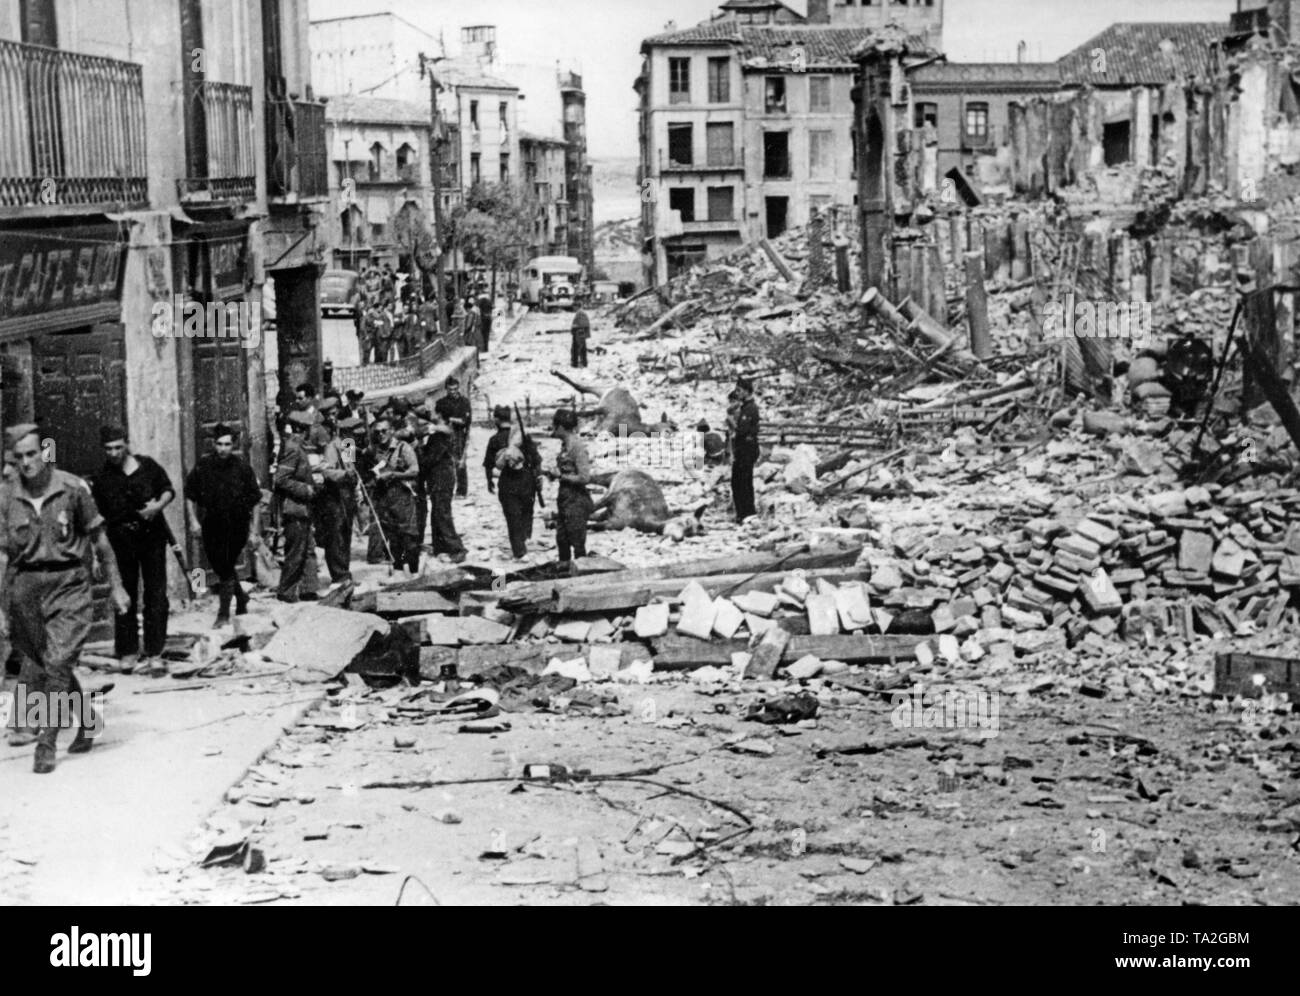 Photo of Spanish soldiers during their visit to Toldeo and the destroyed fortress of Alcazar after its liberation on September 26, 1936. The soldiers are walking through rubble in a street. In the ruins, dead horses. - Stock Image